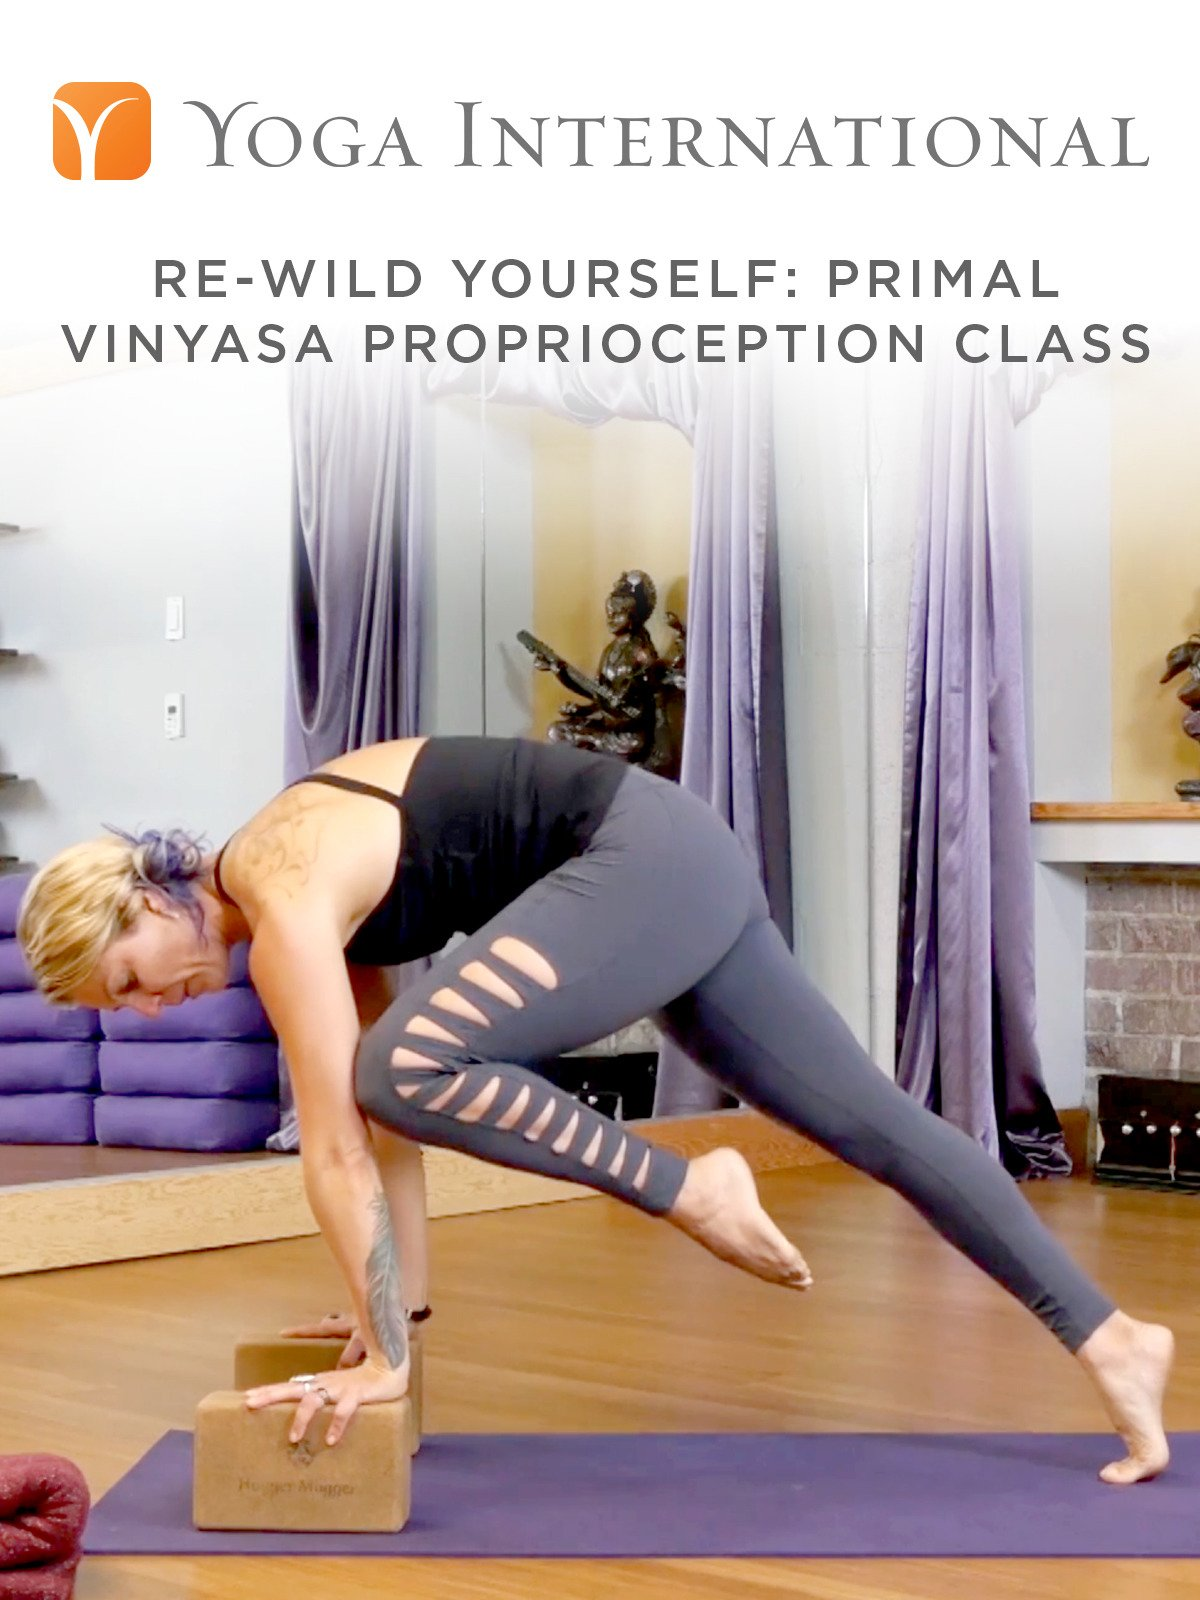 Re-Wild Yourself: Primal Vinyasa Proprioception Class